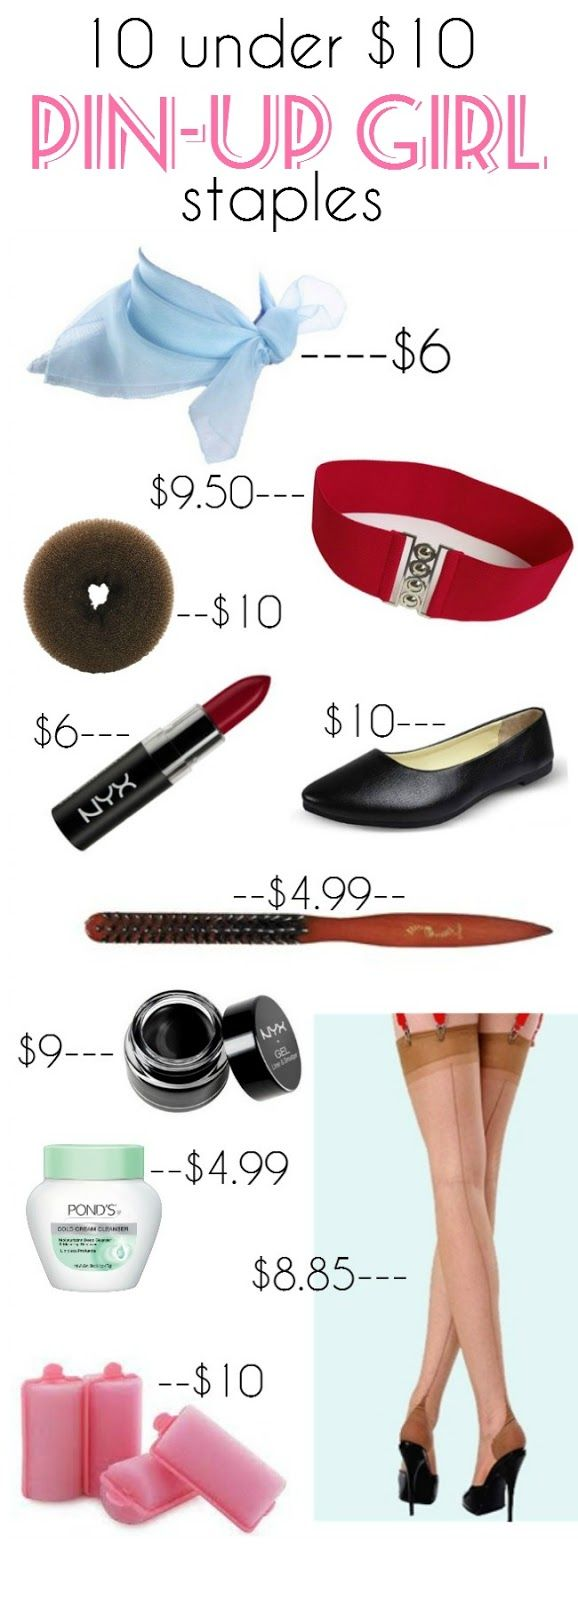 retro pin-up girl style on a budget 10 staples under $10 from Va-Voom Vintage